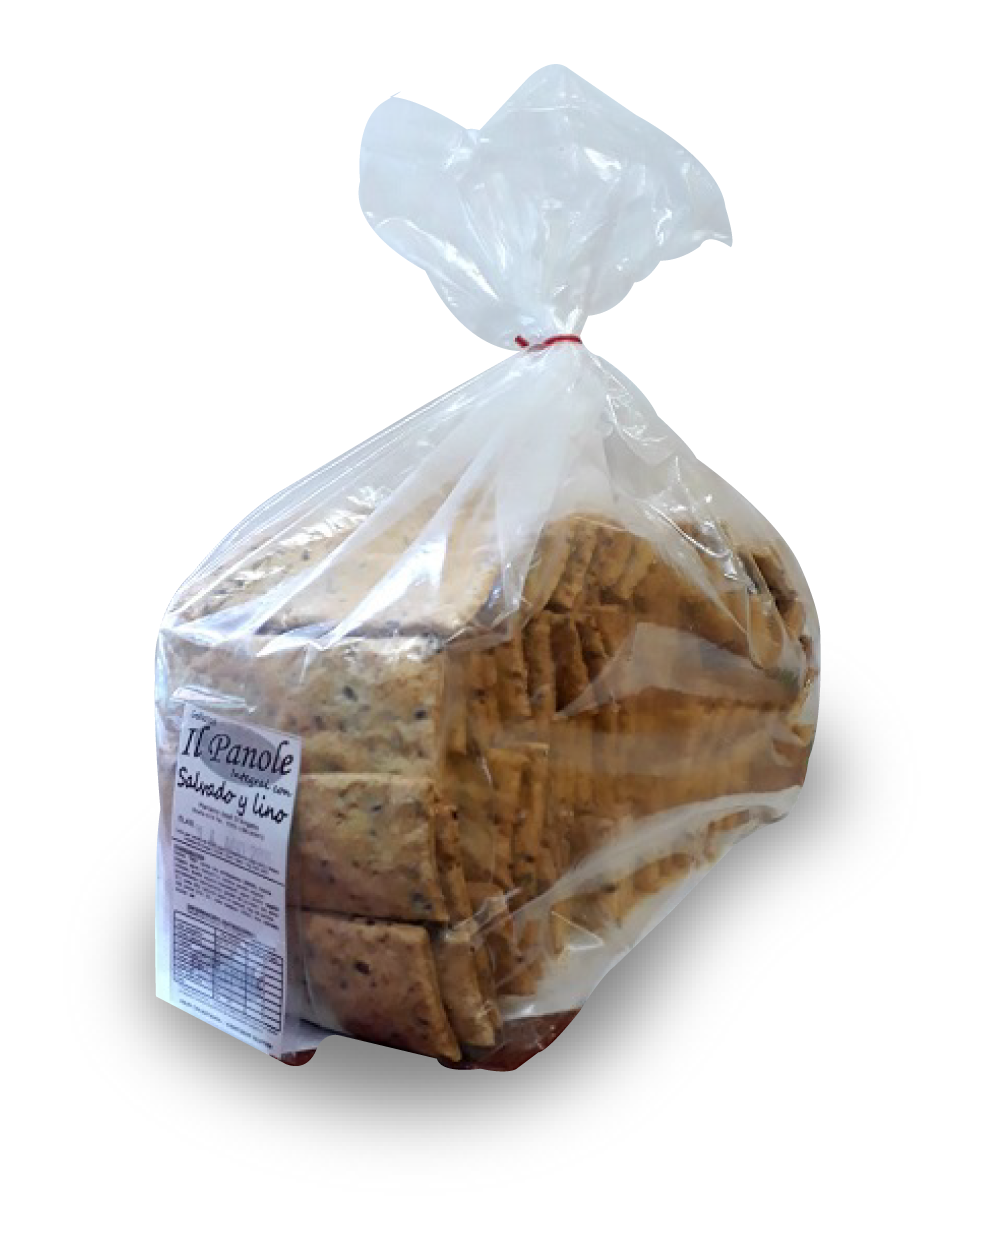 Galletas Salvado y Lino x 1 kg